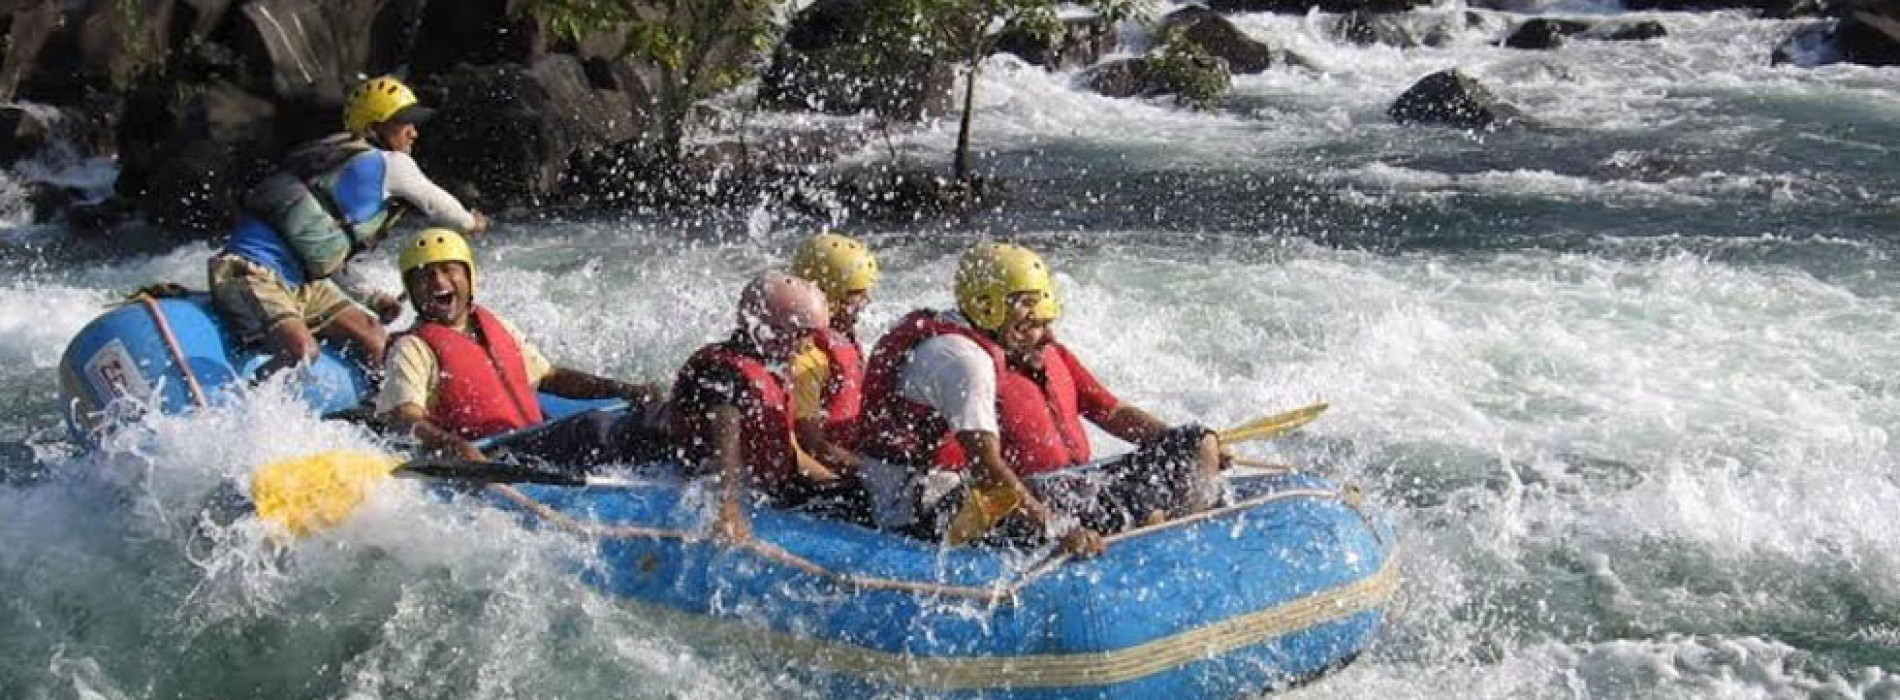 White Water Rafting commences in Goa!